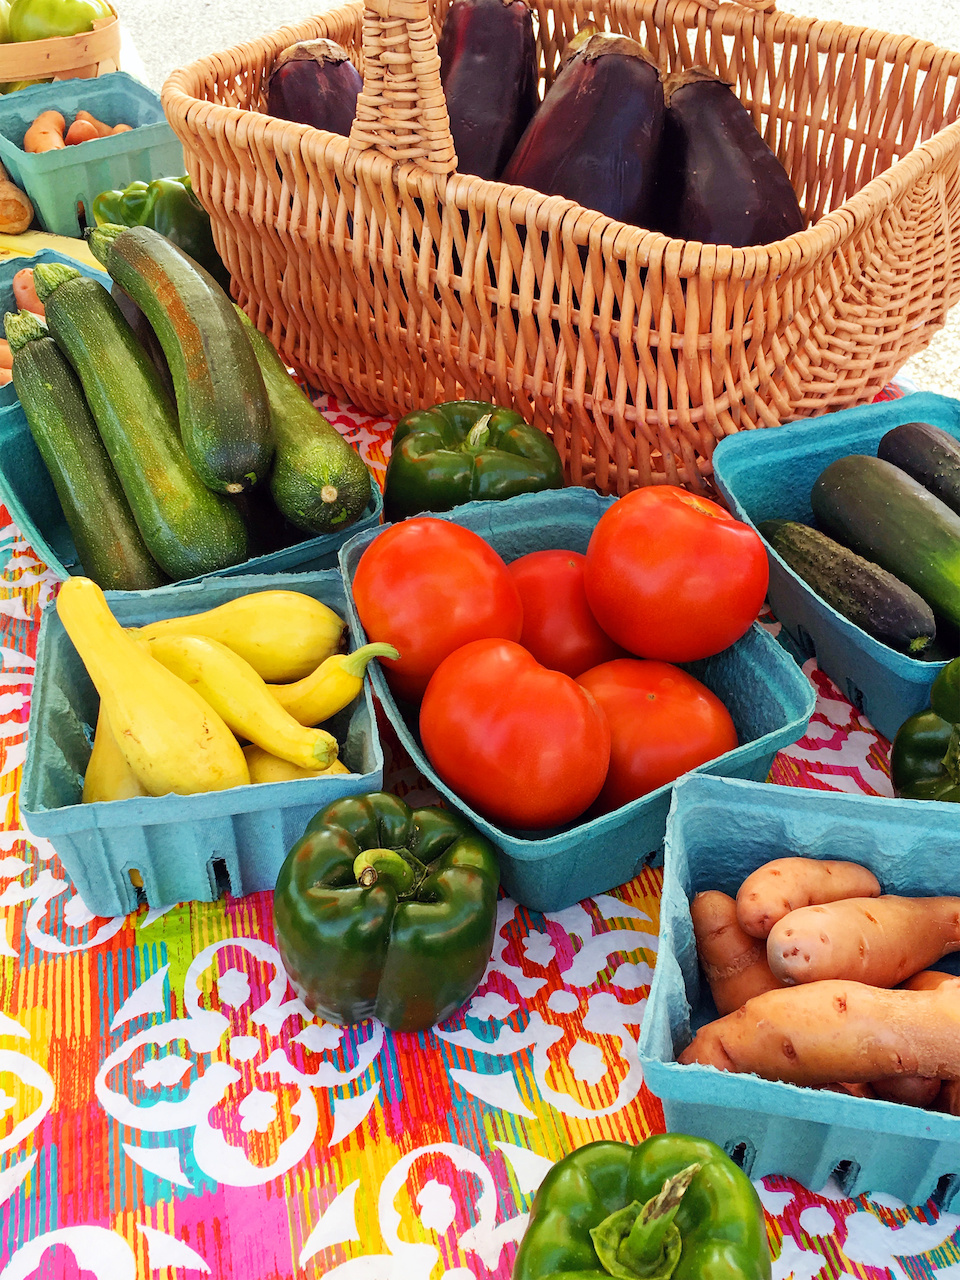 This table of offers a rainbow of fresh veggies!